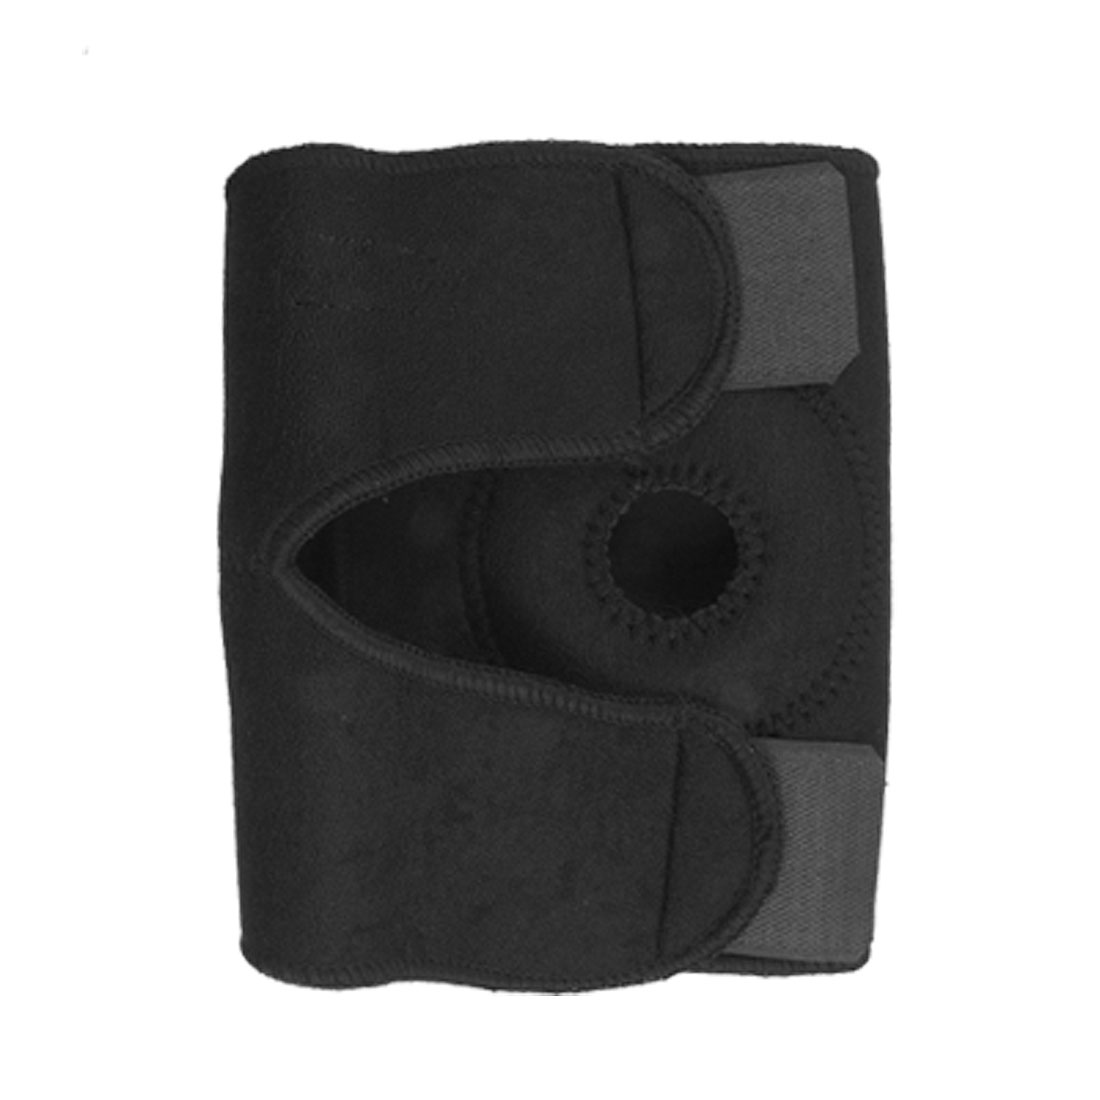 Black Neoprene Hook and Loop Fastener Knee Protector Joint Support 1PCS